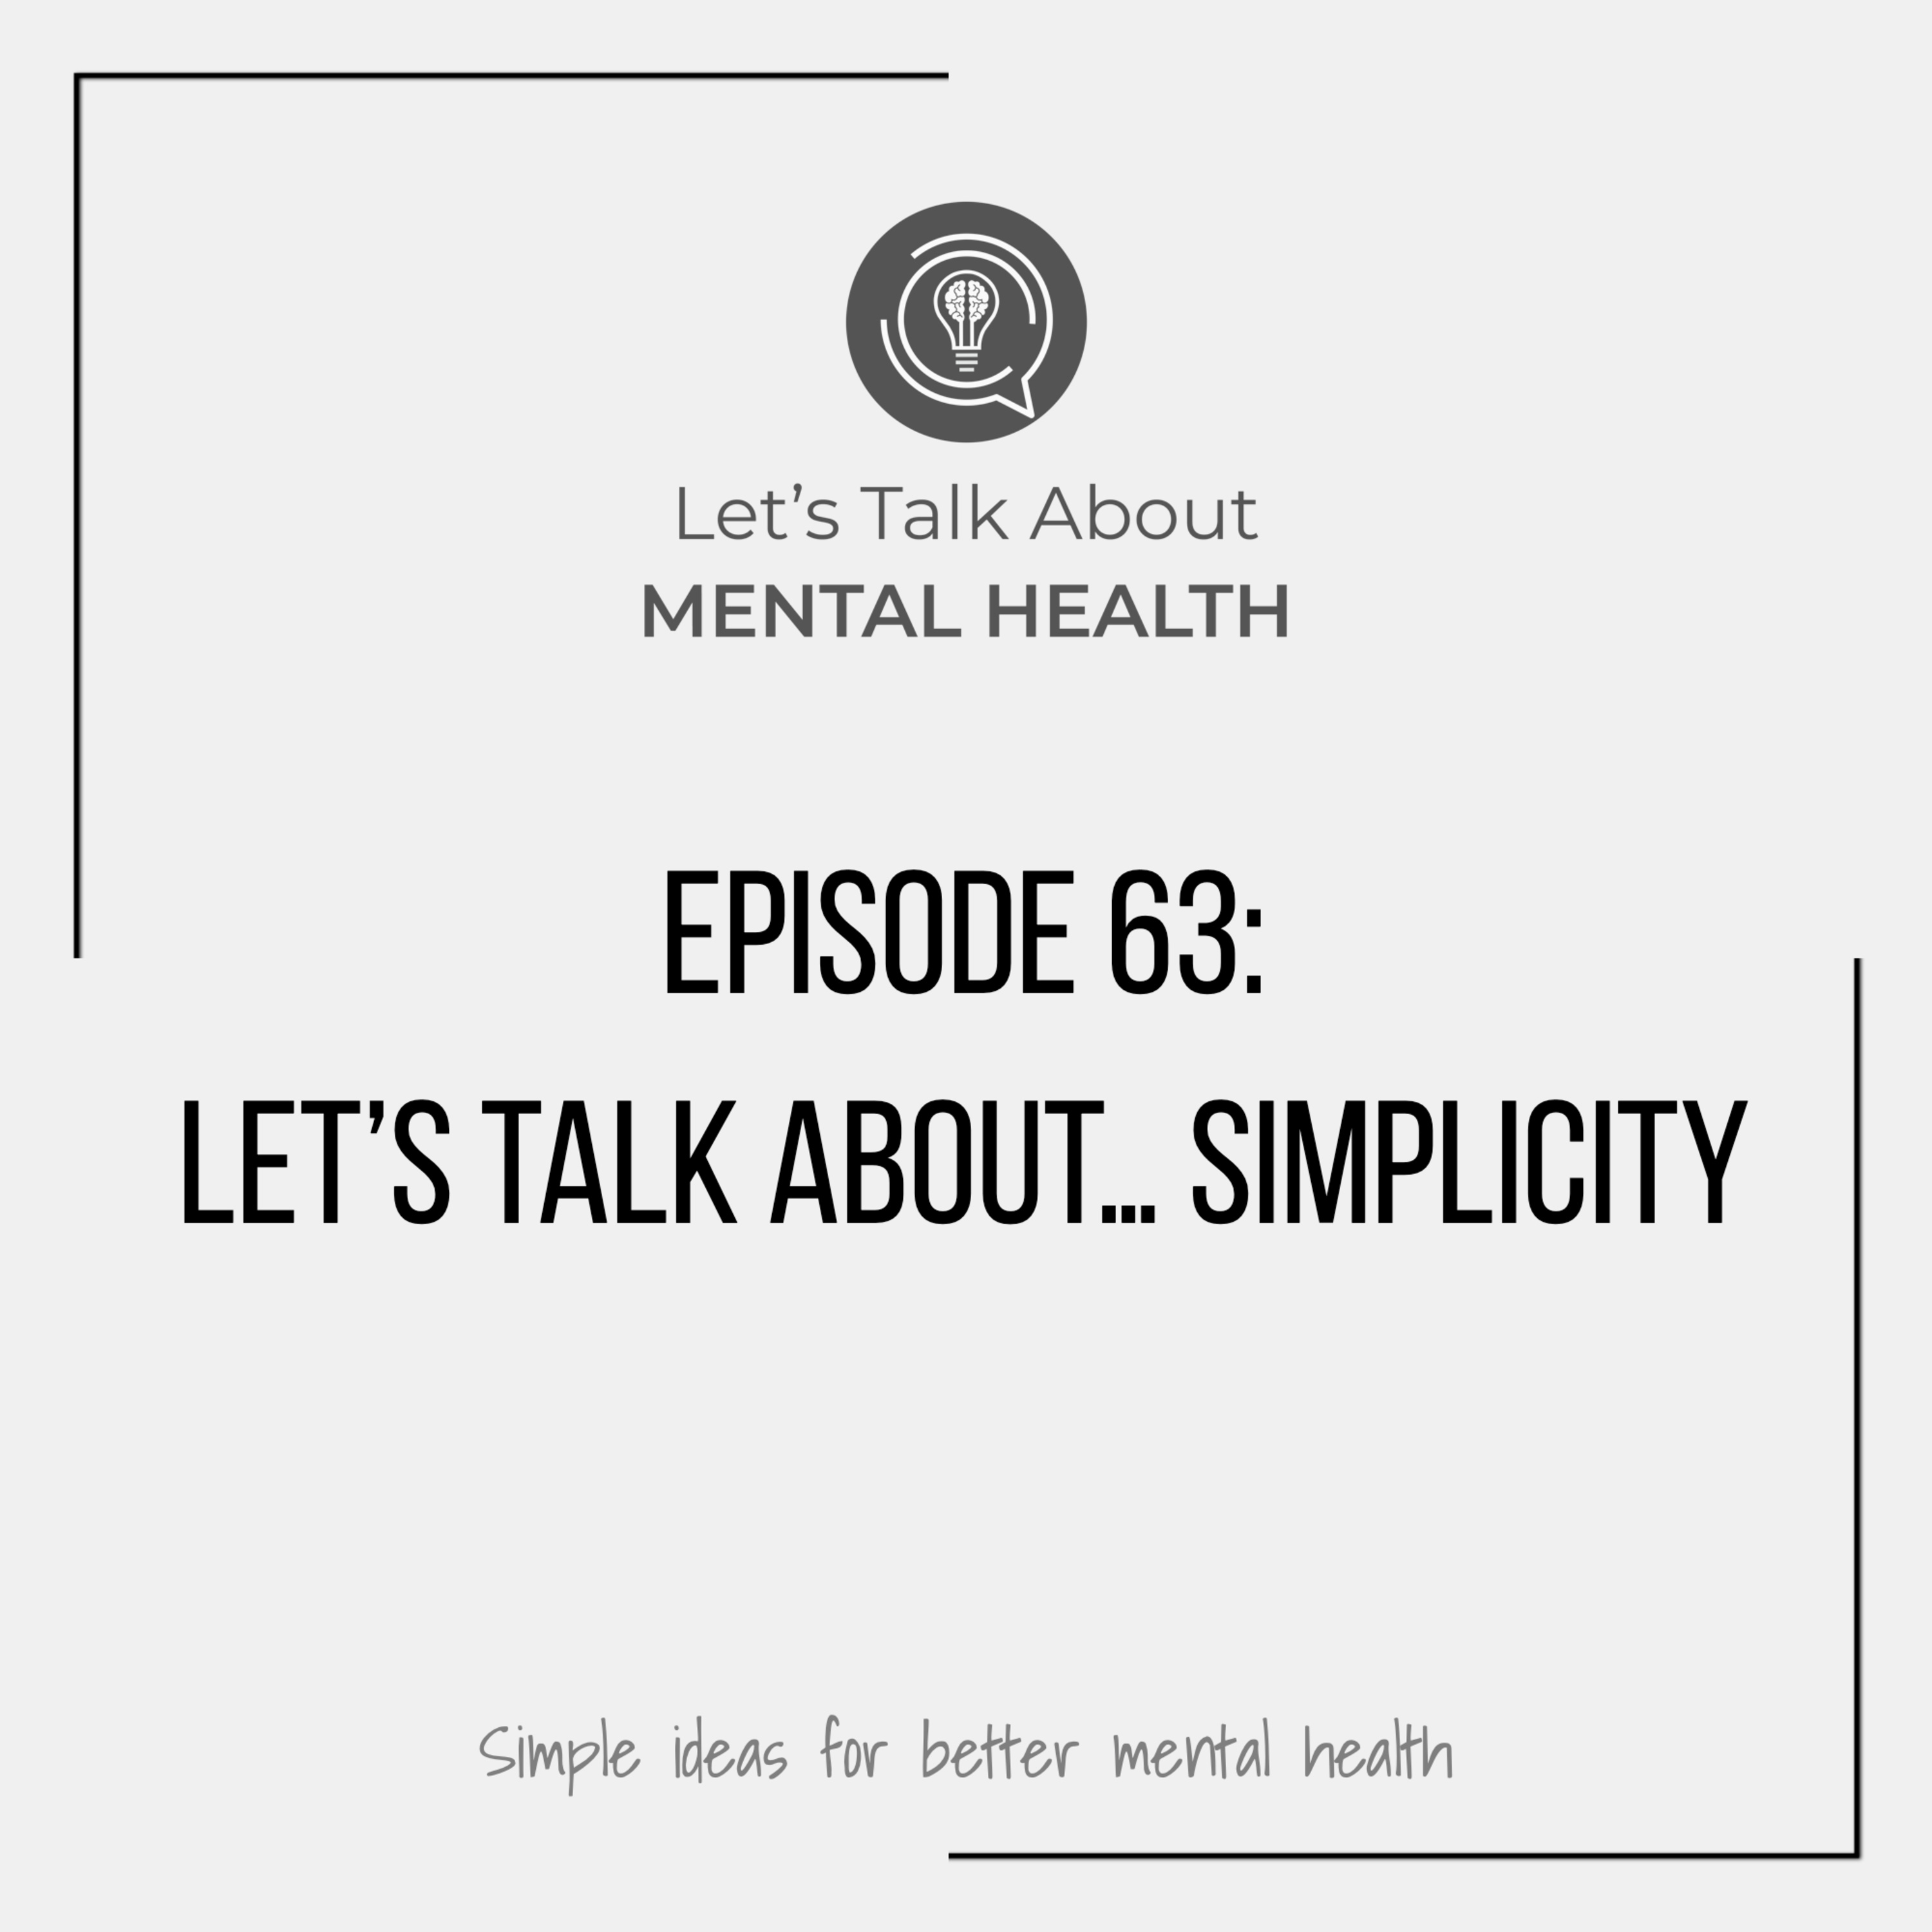 Let's Talk About Mental Health - Let's Talk About... Simplicity